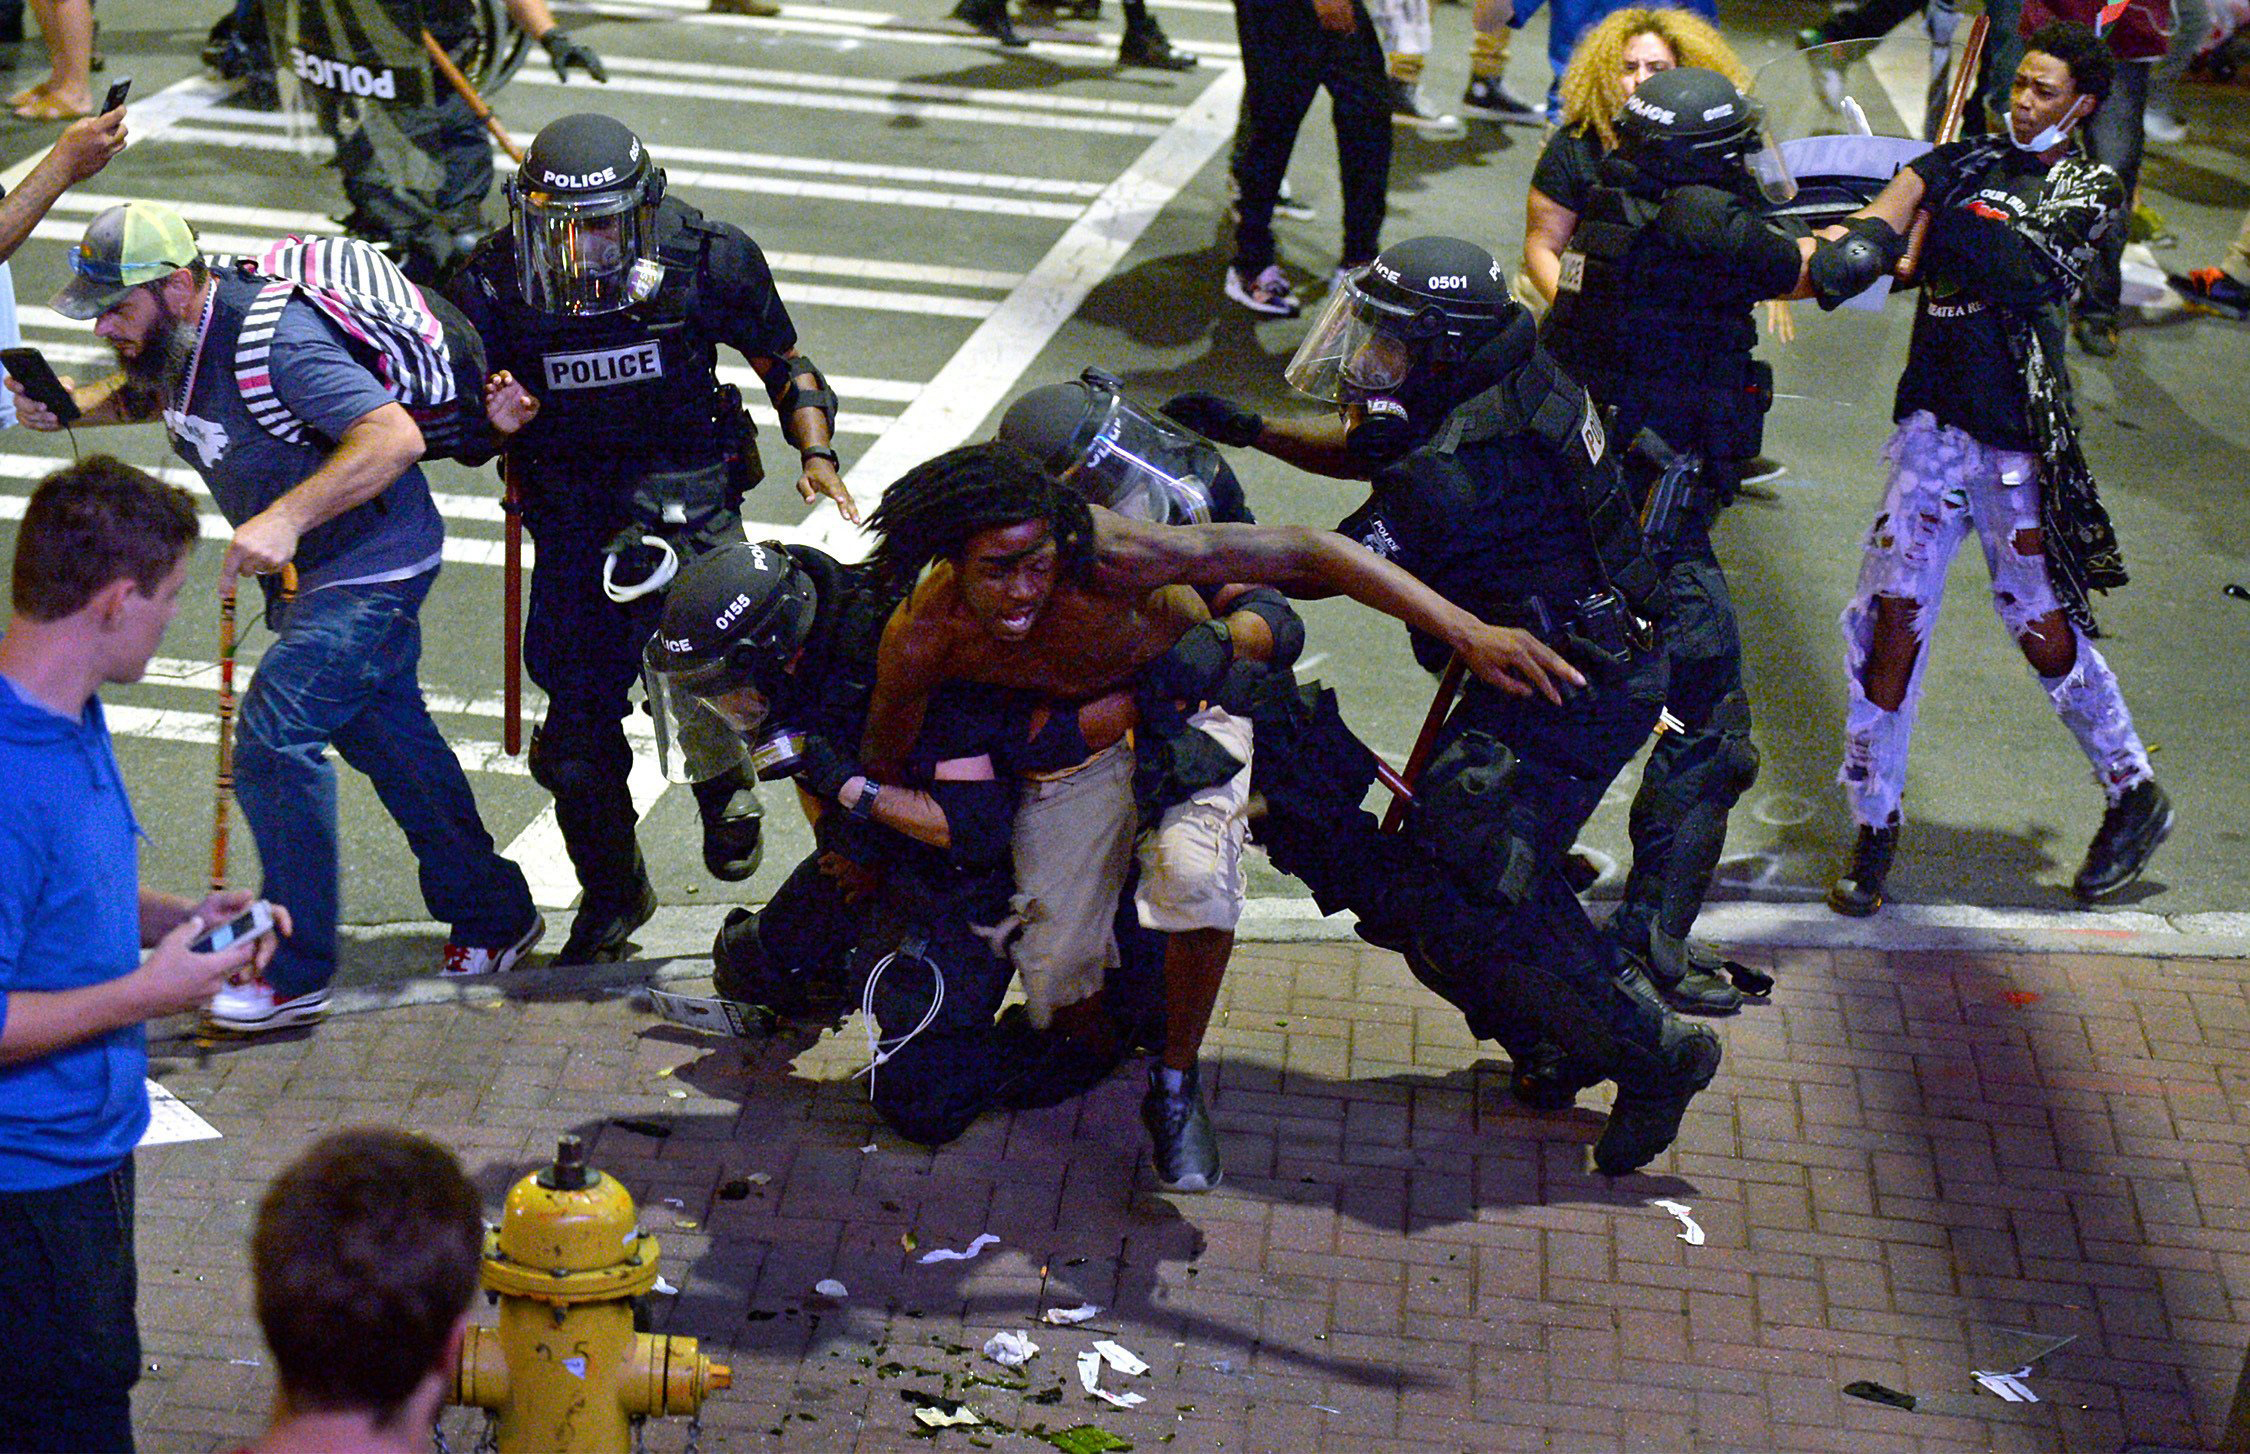 A protester is taken into custody by police officers in Charlotte, N.C., on Sept. 21, 2016.